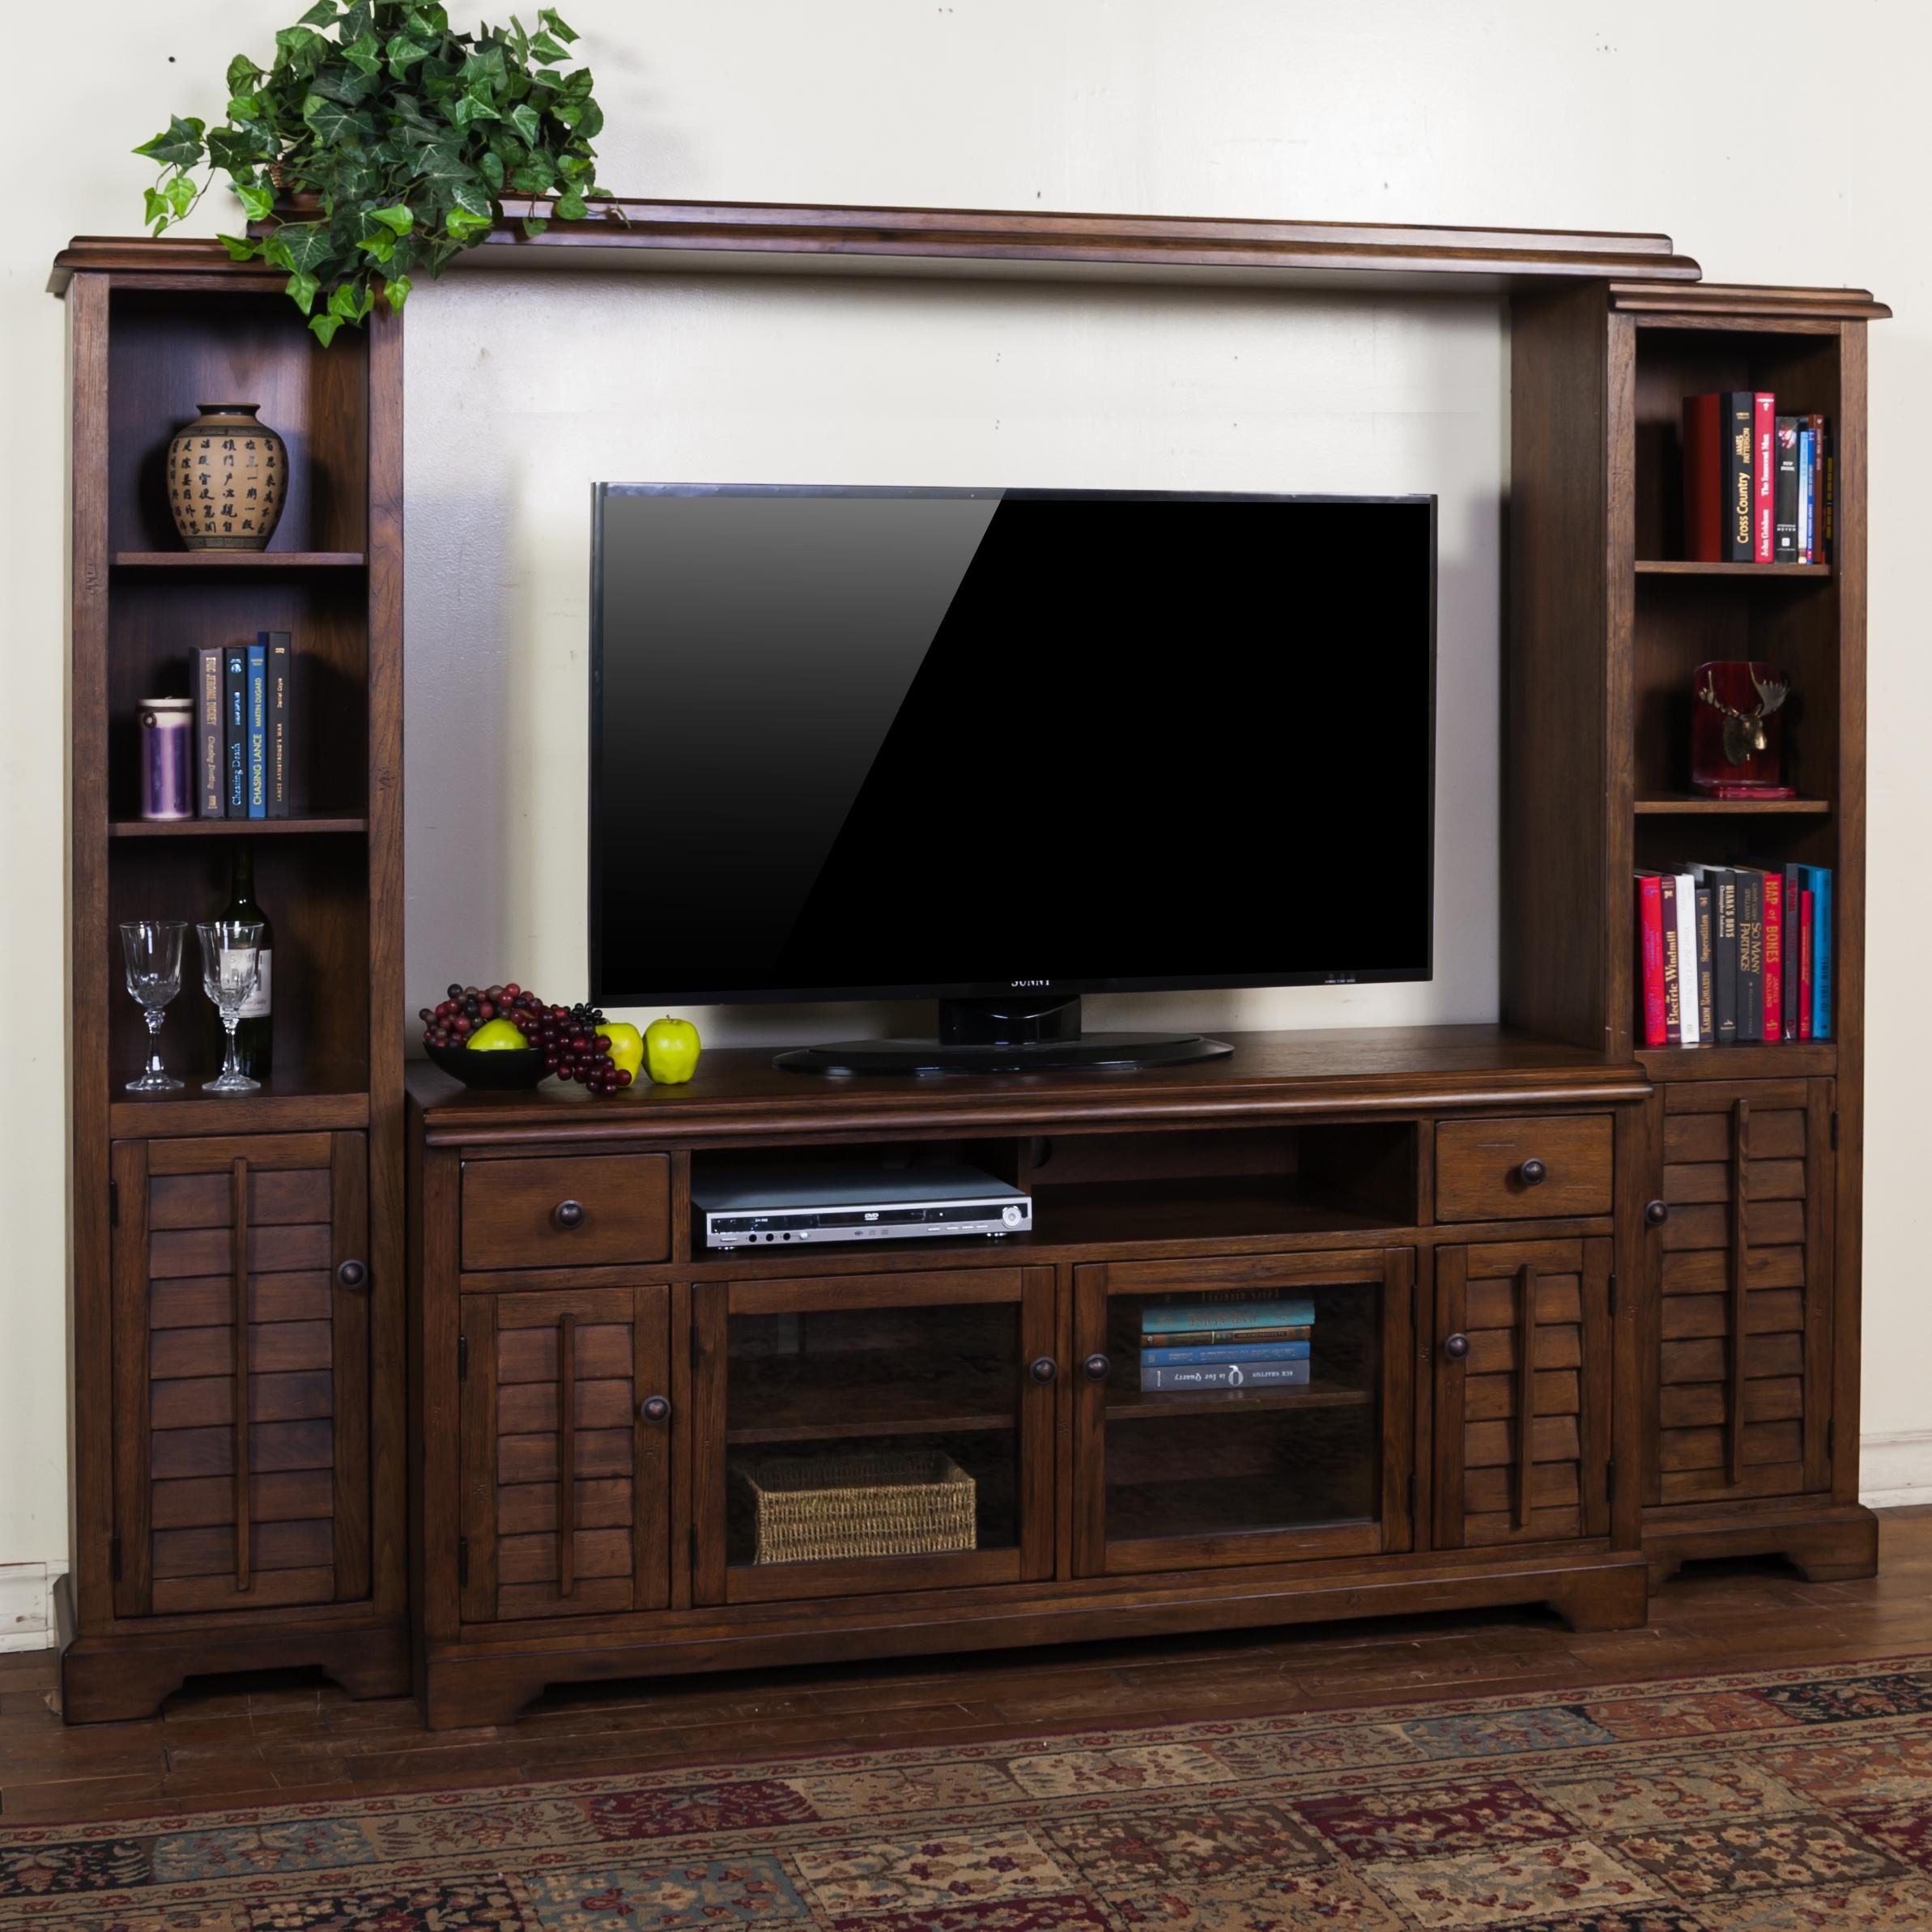 Sunny designs savannah entertainment wall unit w 65 w tv for Furniture 65